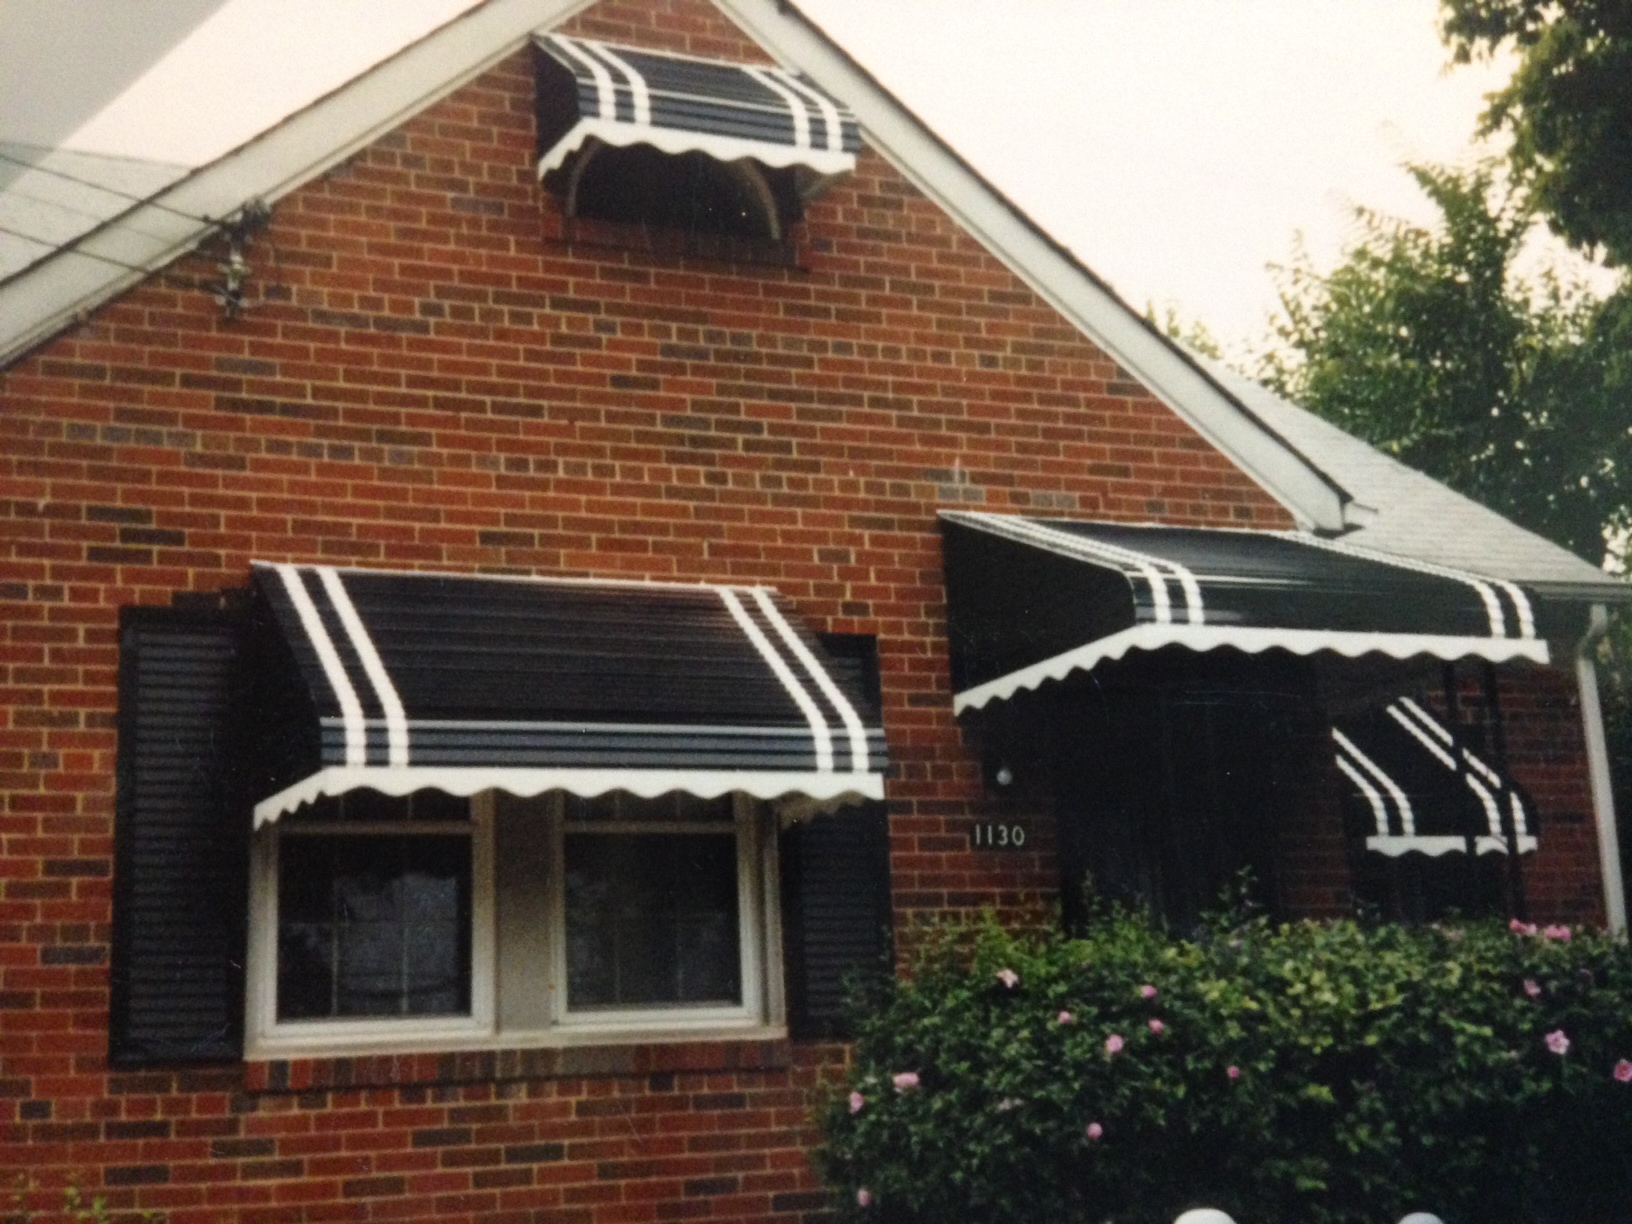 aluminum awnings one awning can be used to cover two windows like in this particular home. EYSYAJD